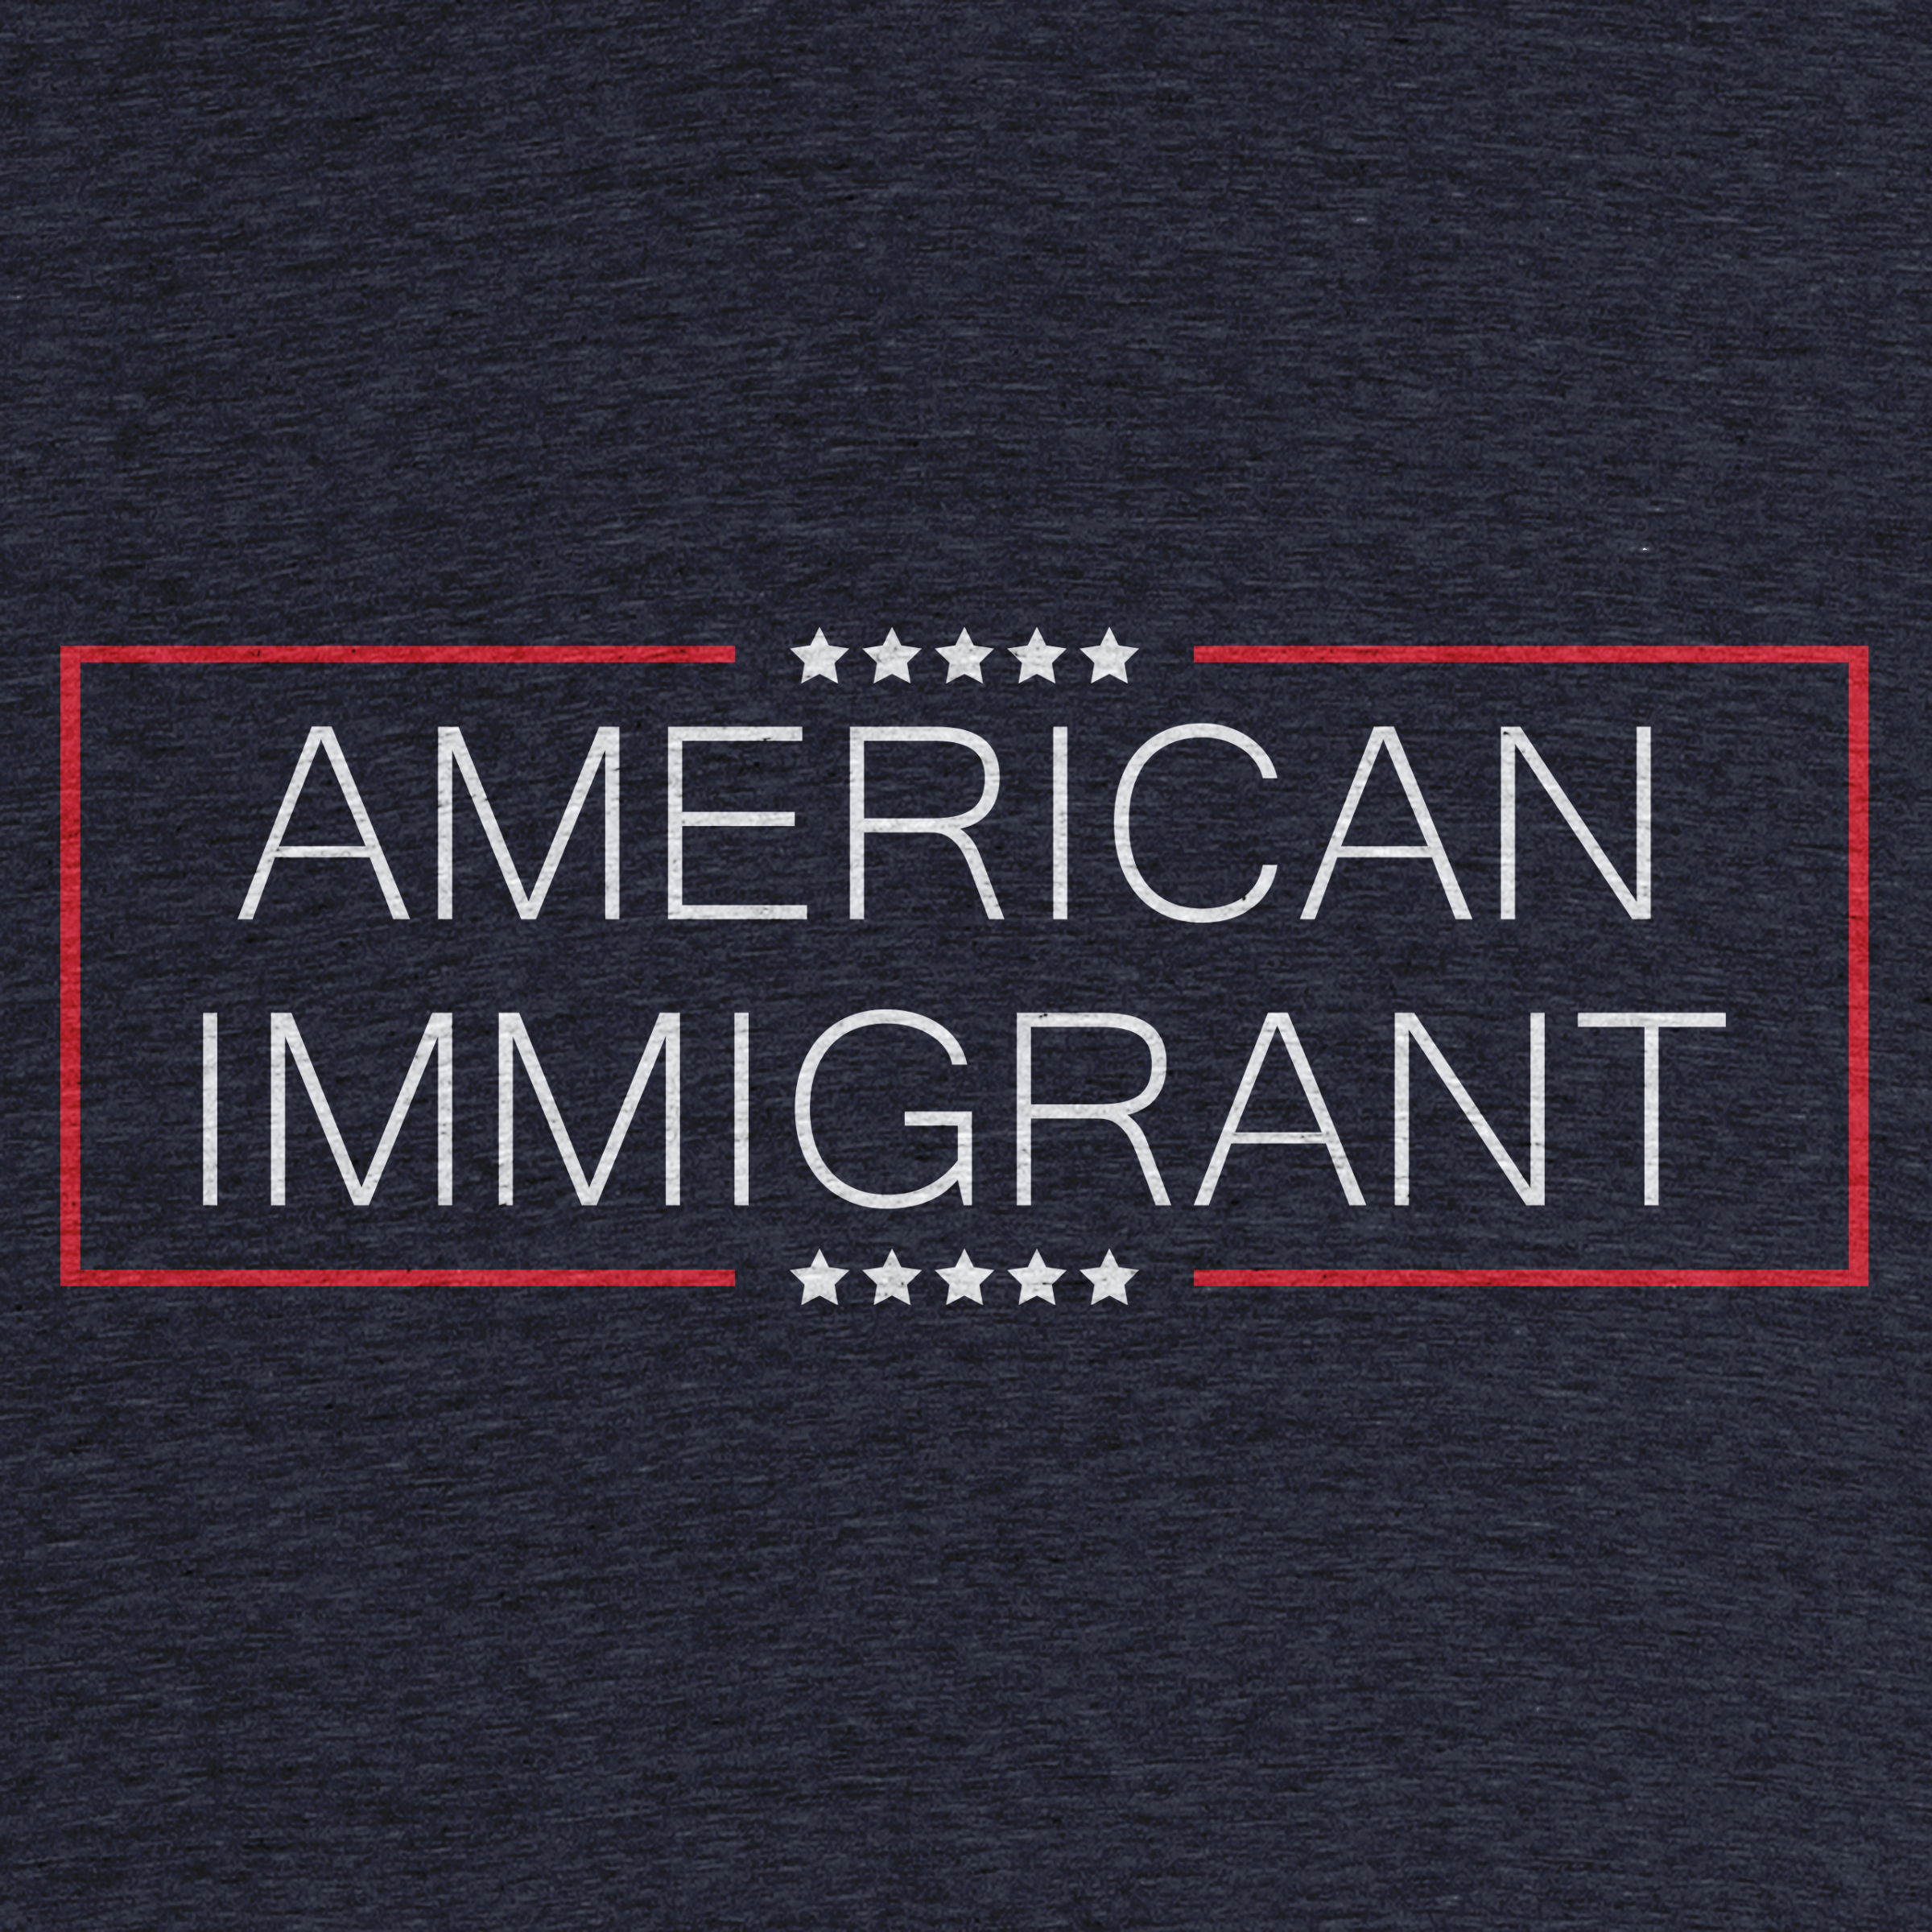 American Immigrant